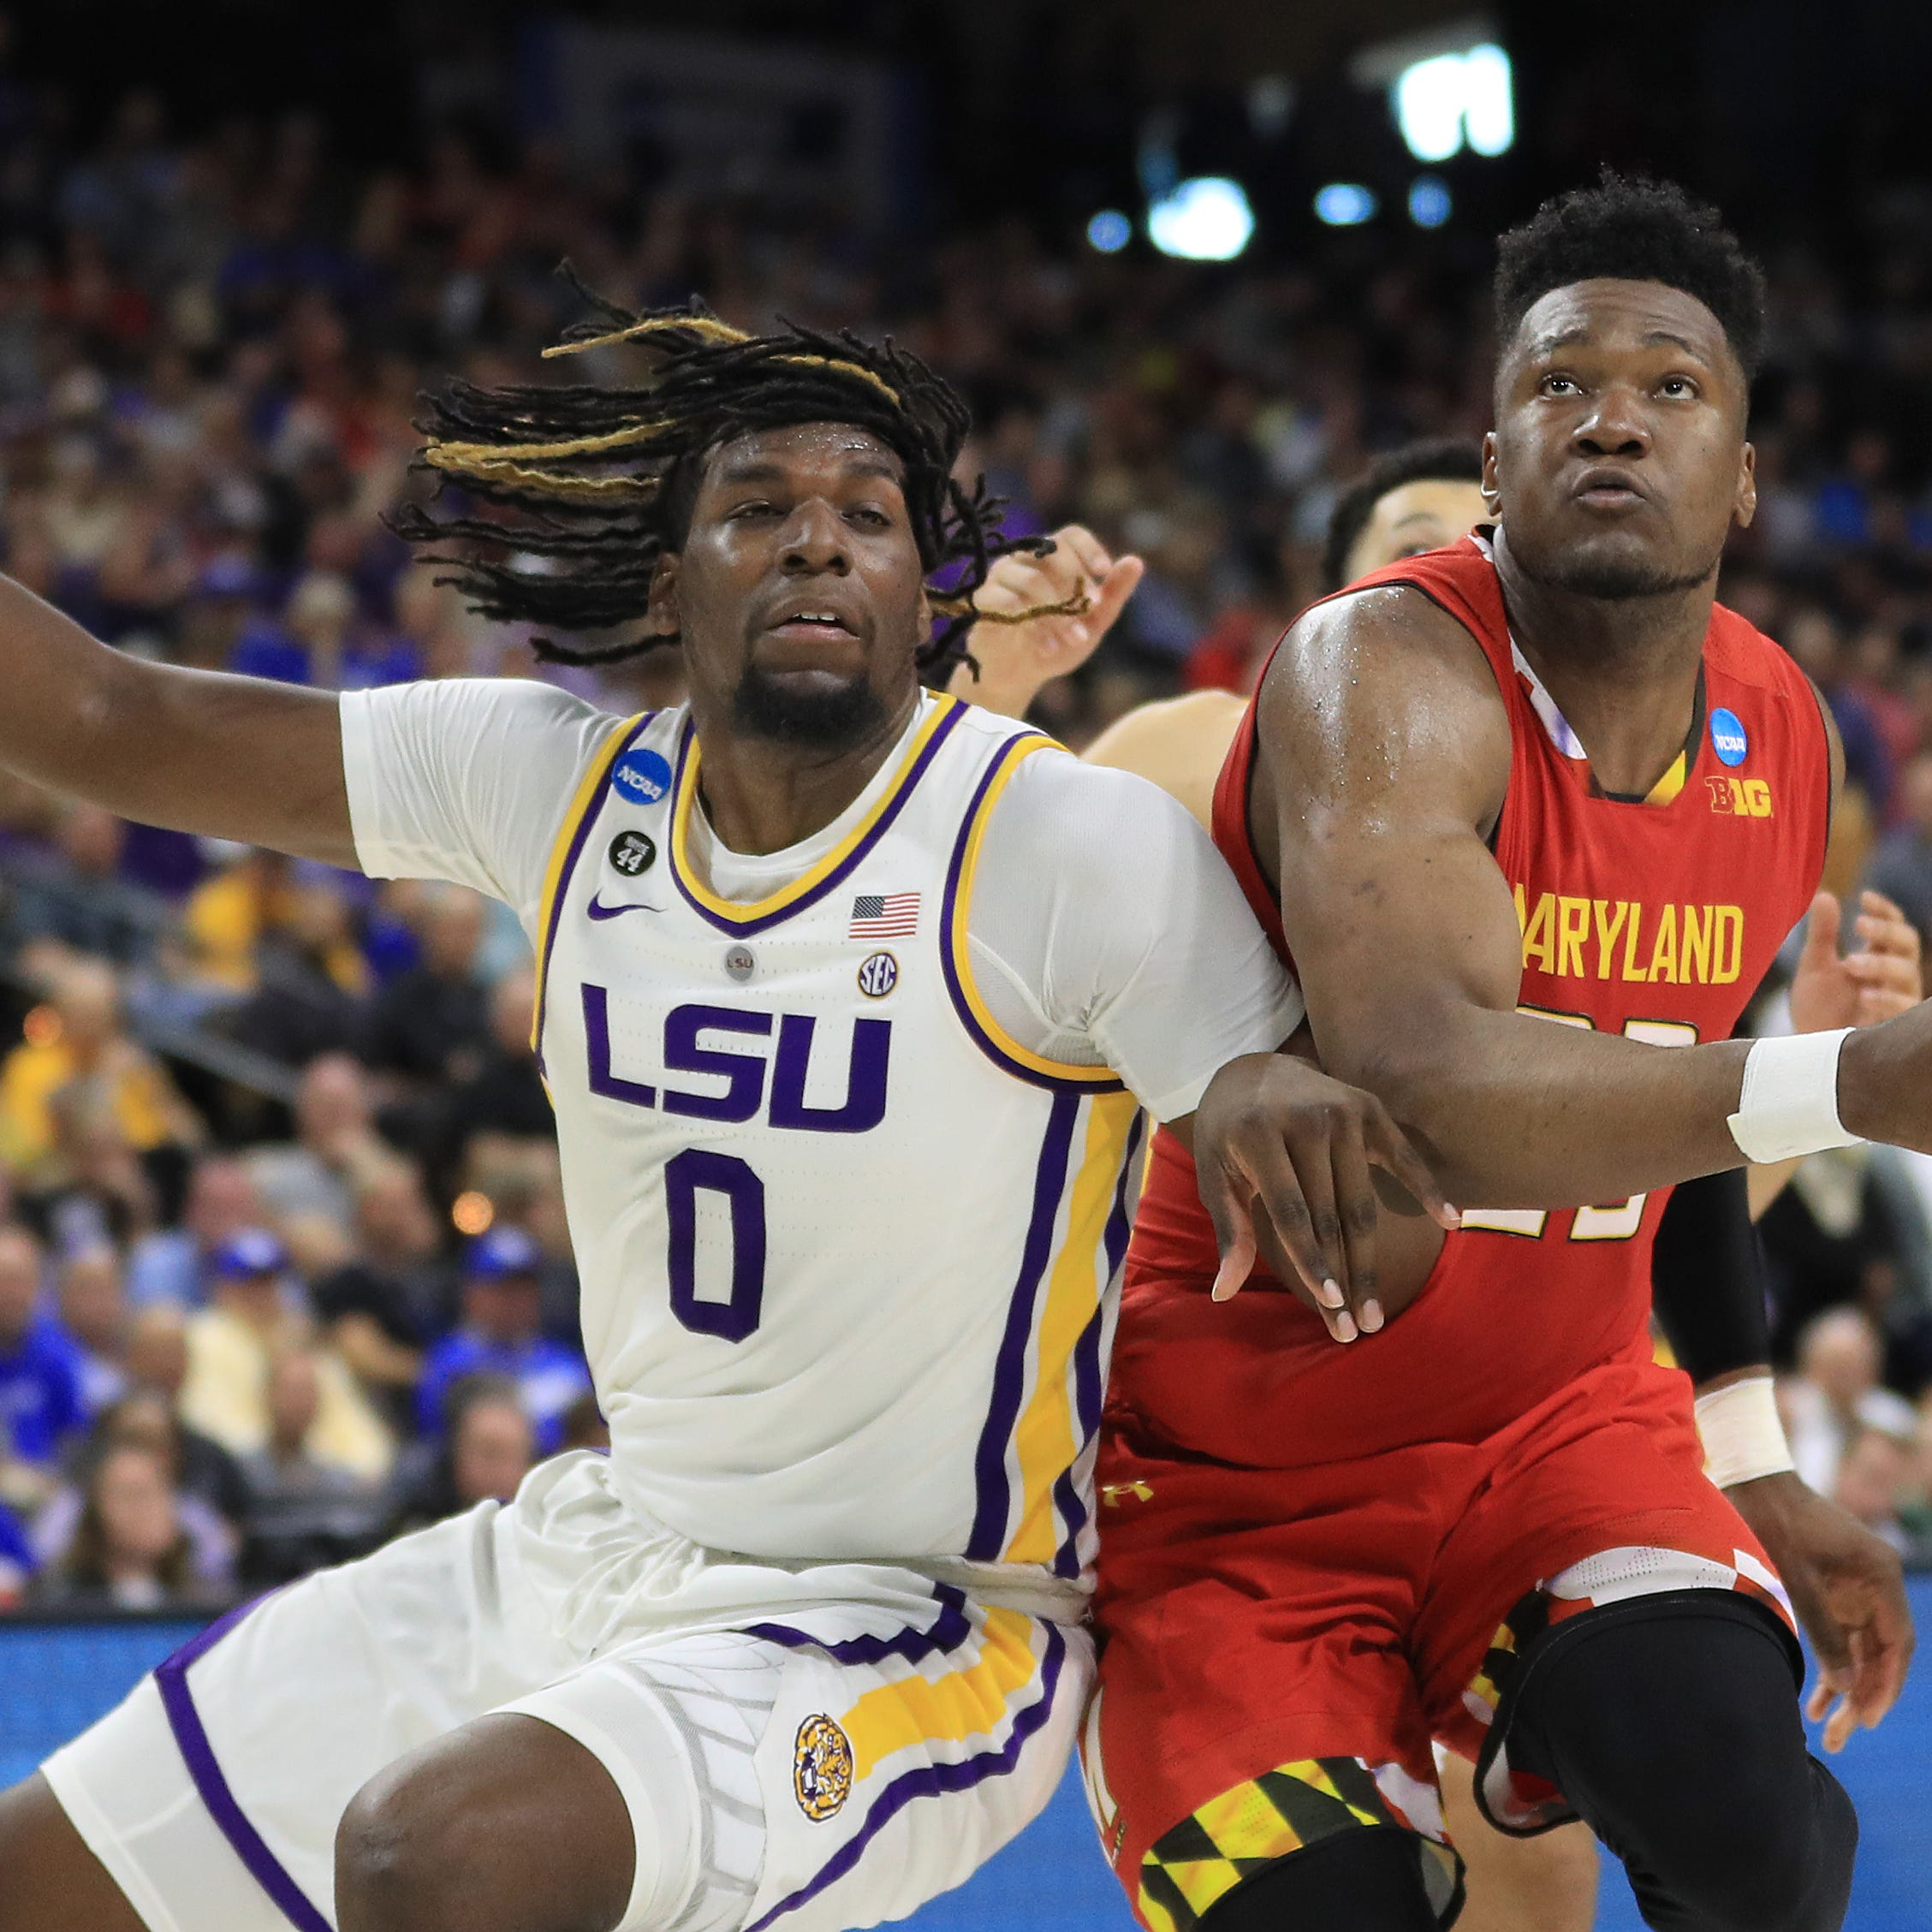 As expected, LSU's Naz Reid is a one-and-done player as he says he will enter NBA Draft